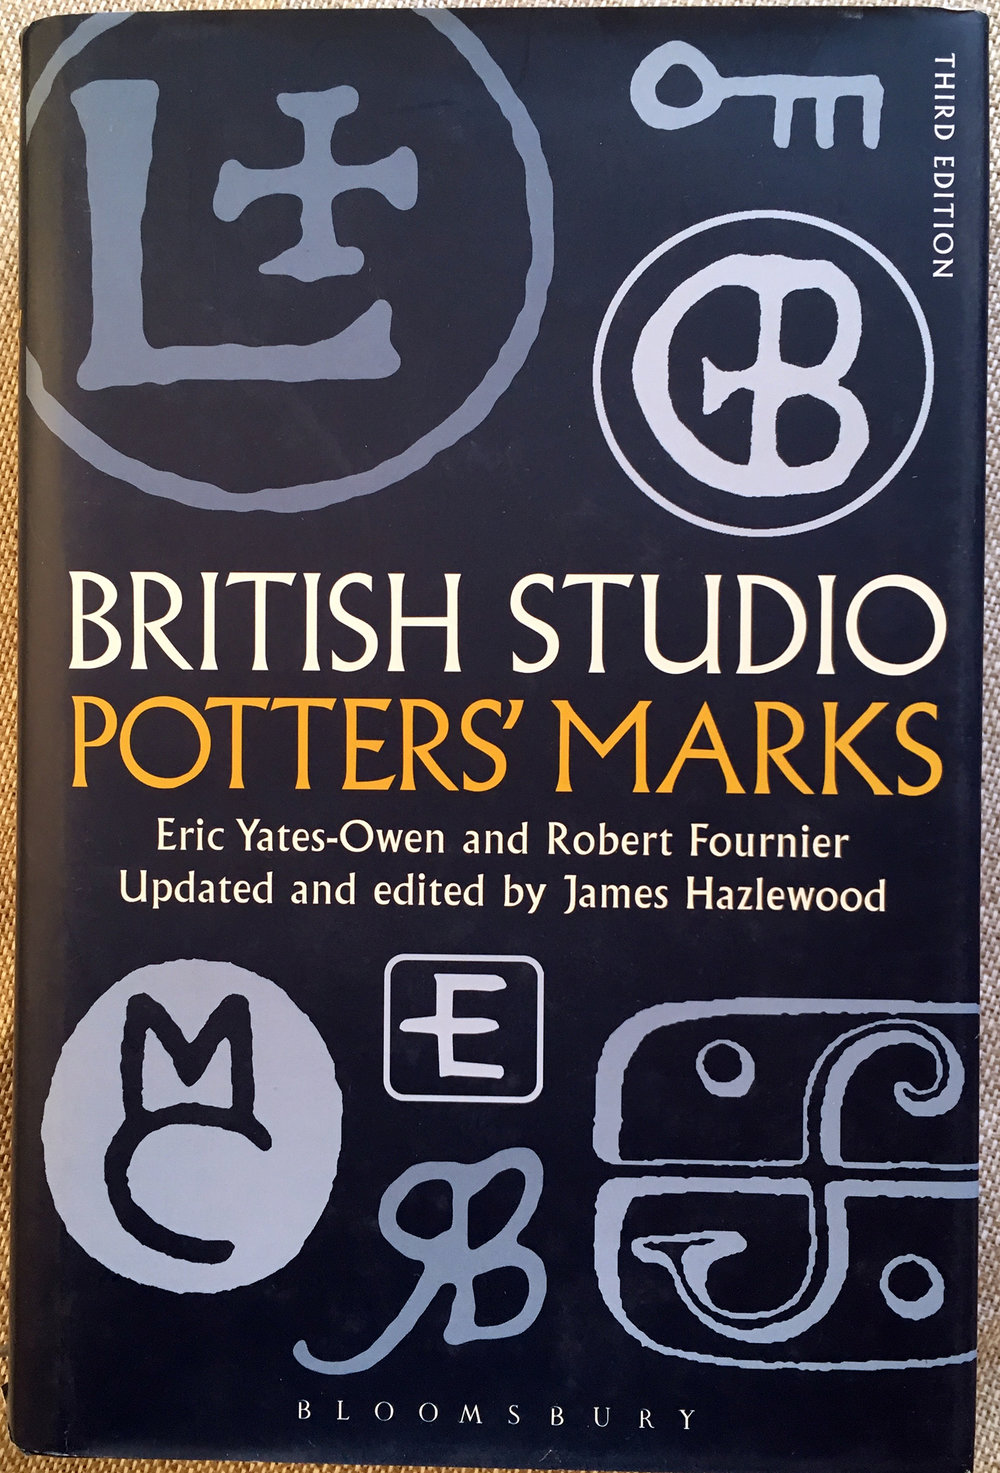 British Studio Potters Marks